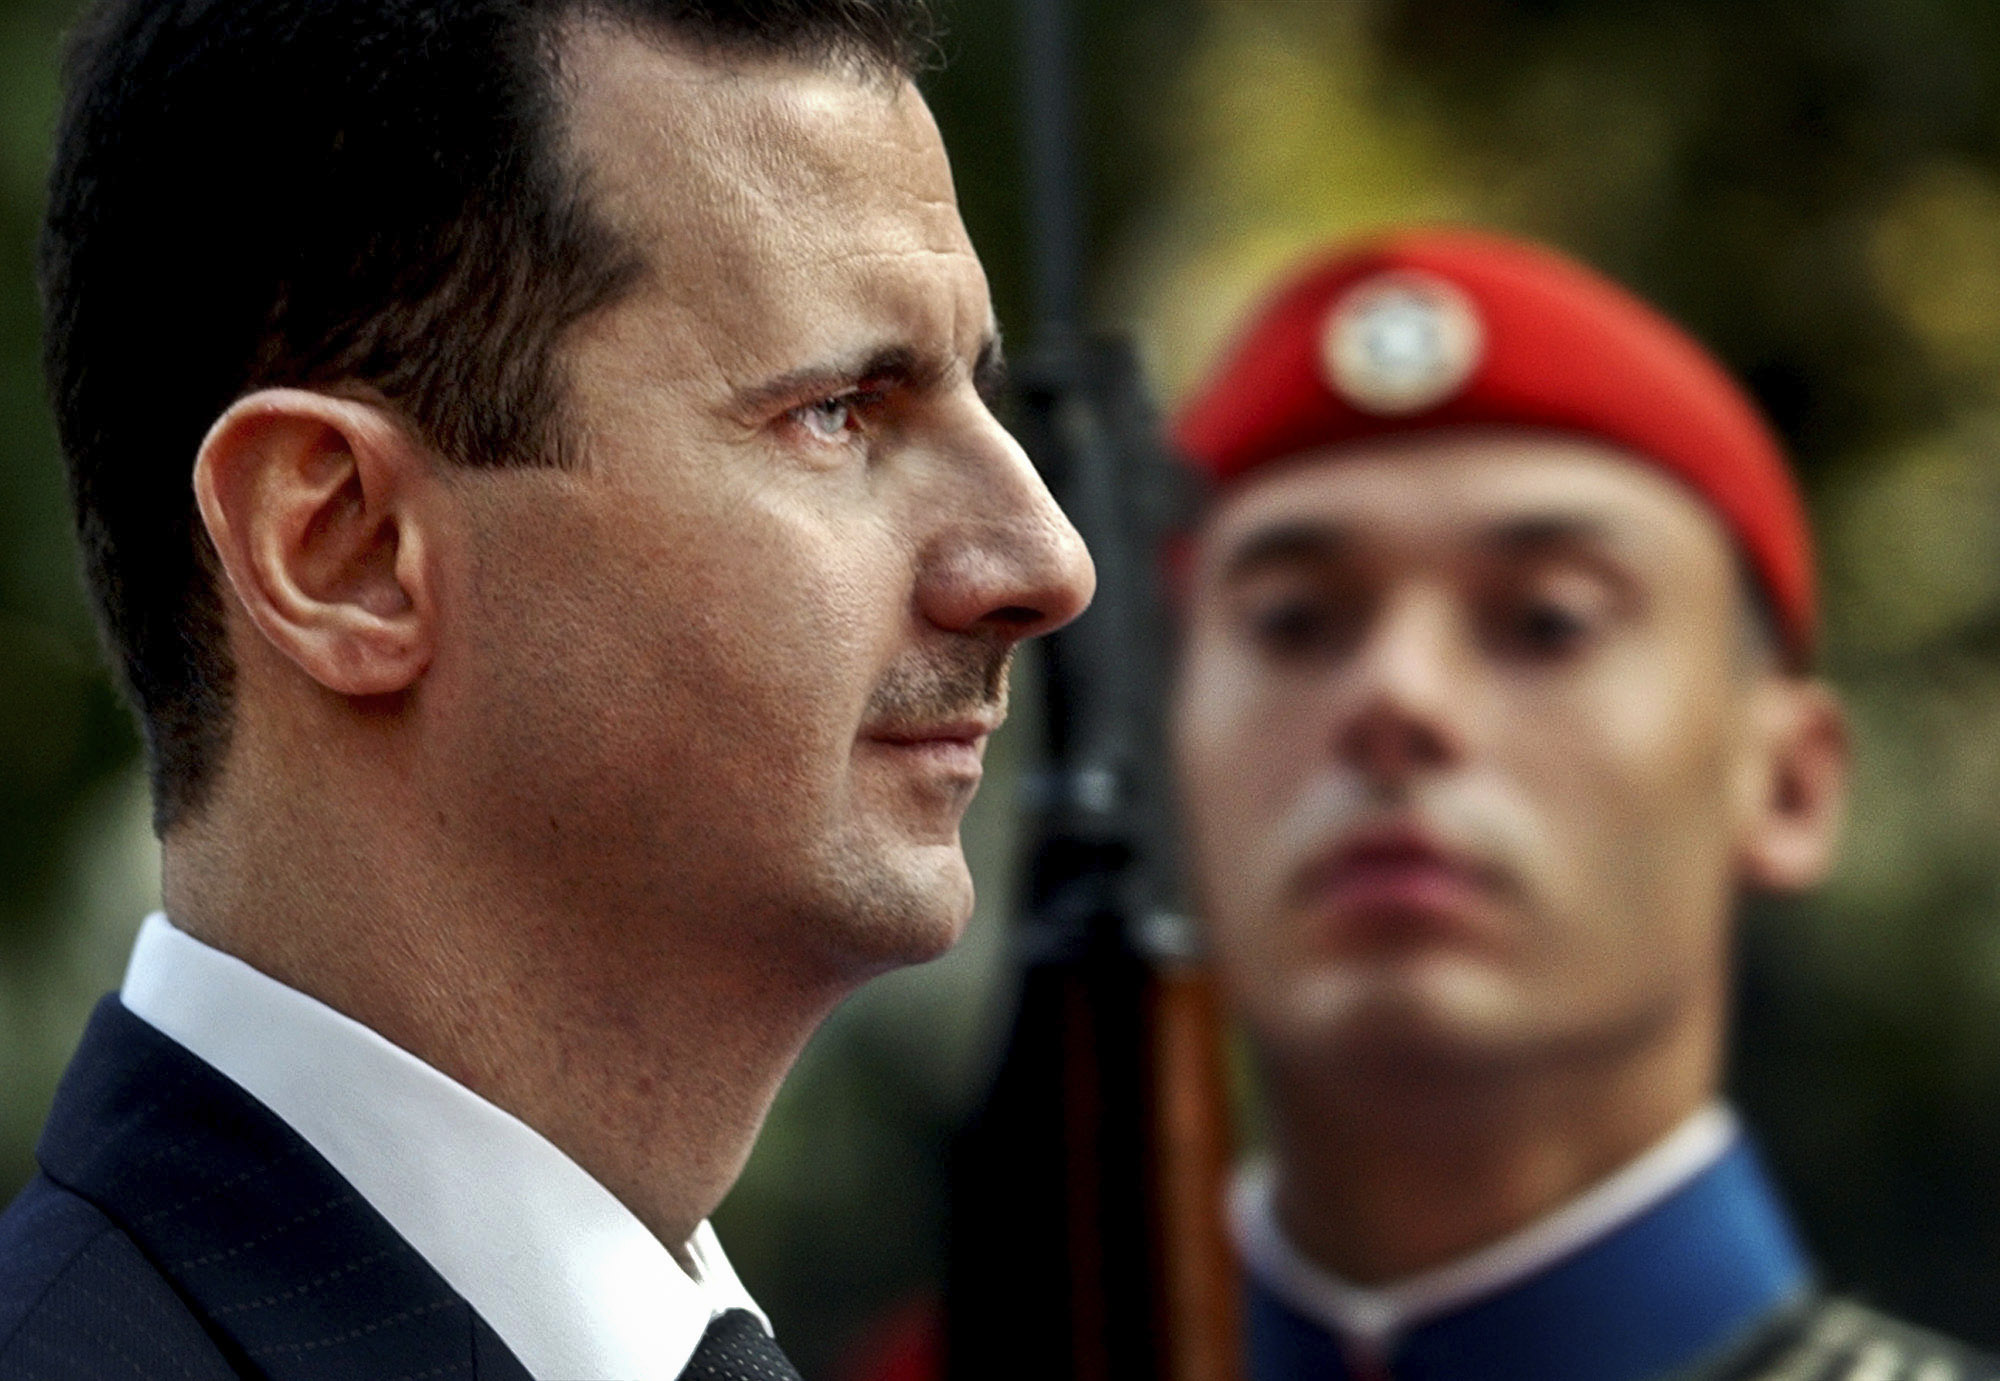 Syrian President Bashar Assad reviews the presidential guard during a welcoming ceremony in Athens on Dec. 15, 2003. (AP Photo/Petros Giannakouris)